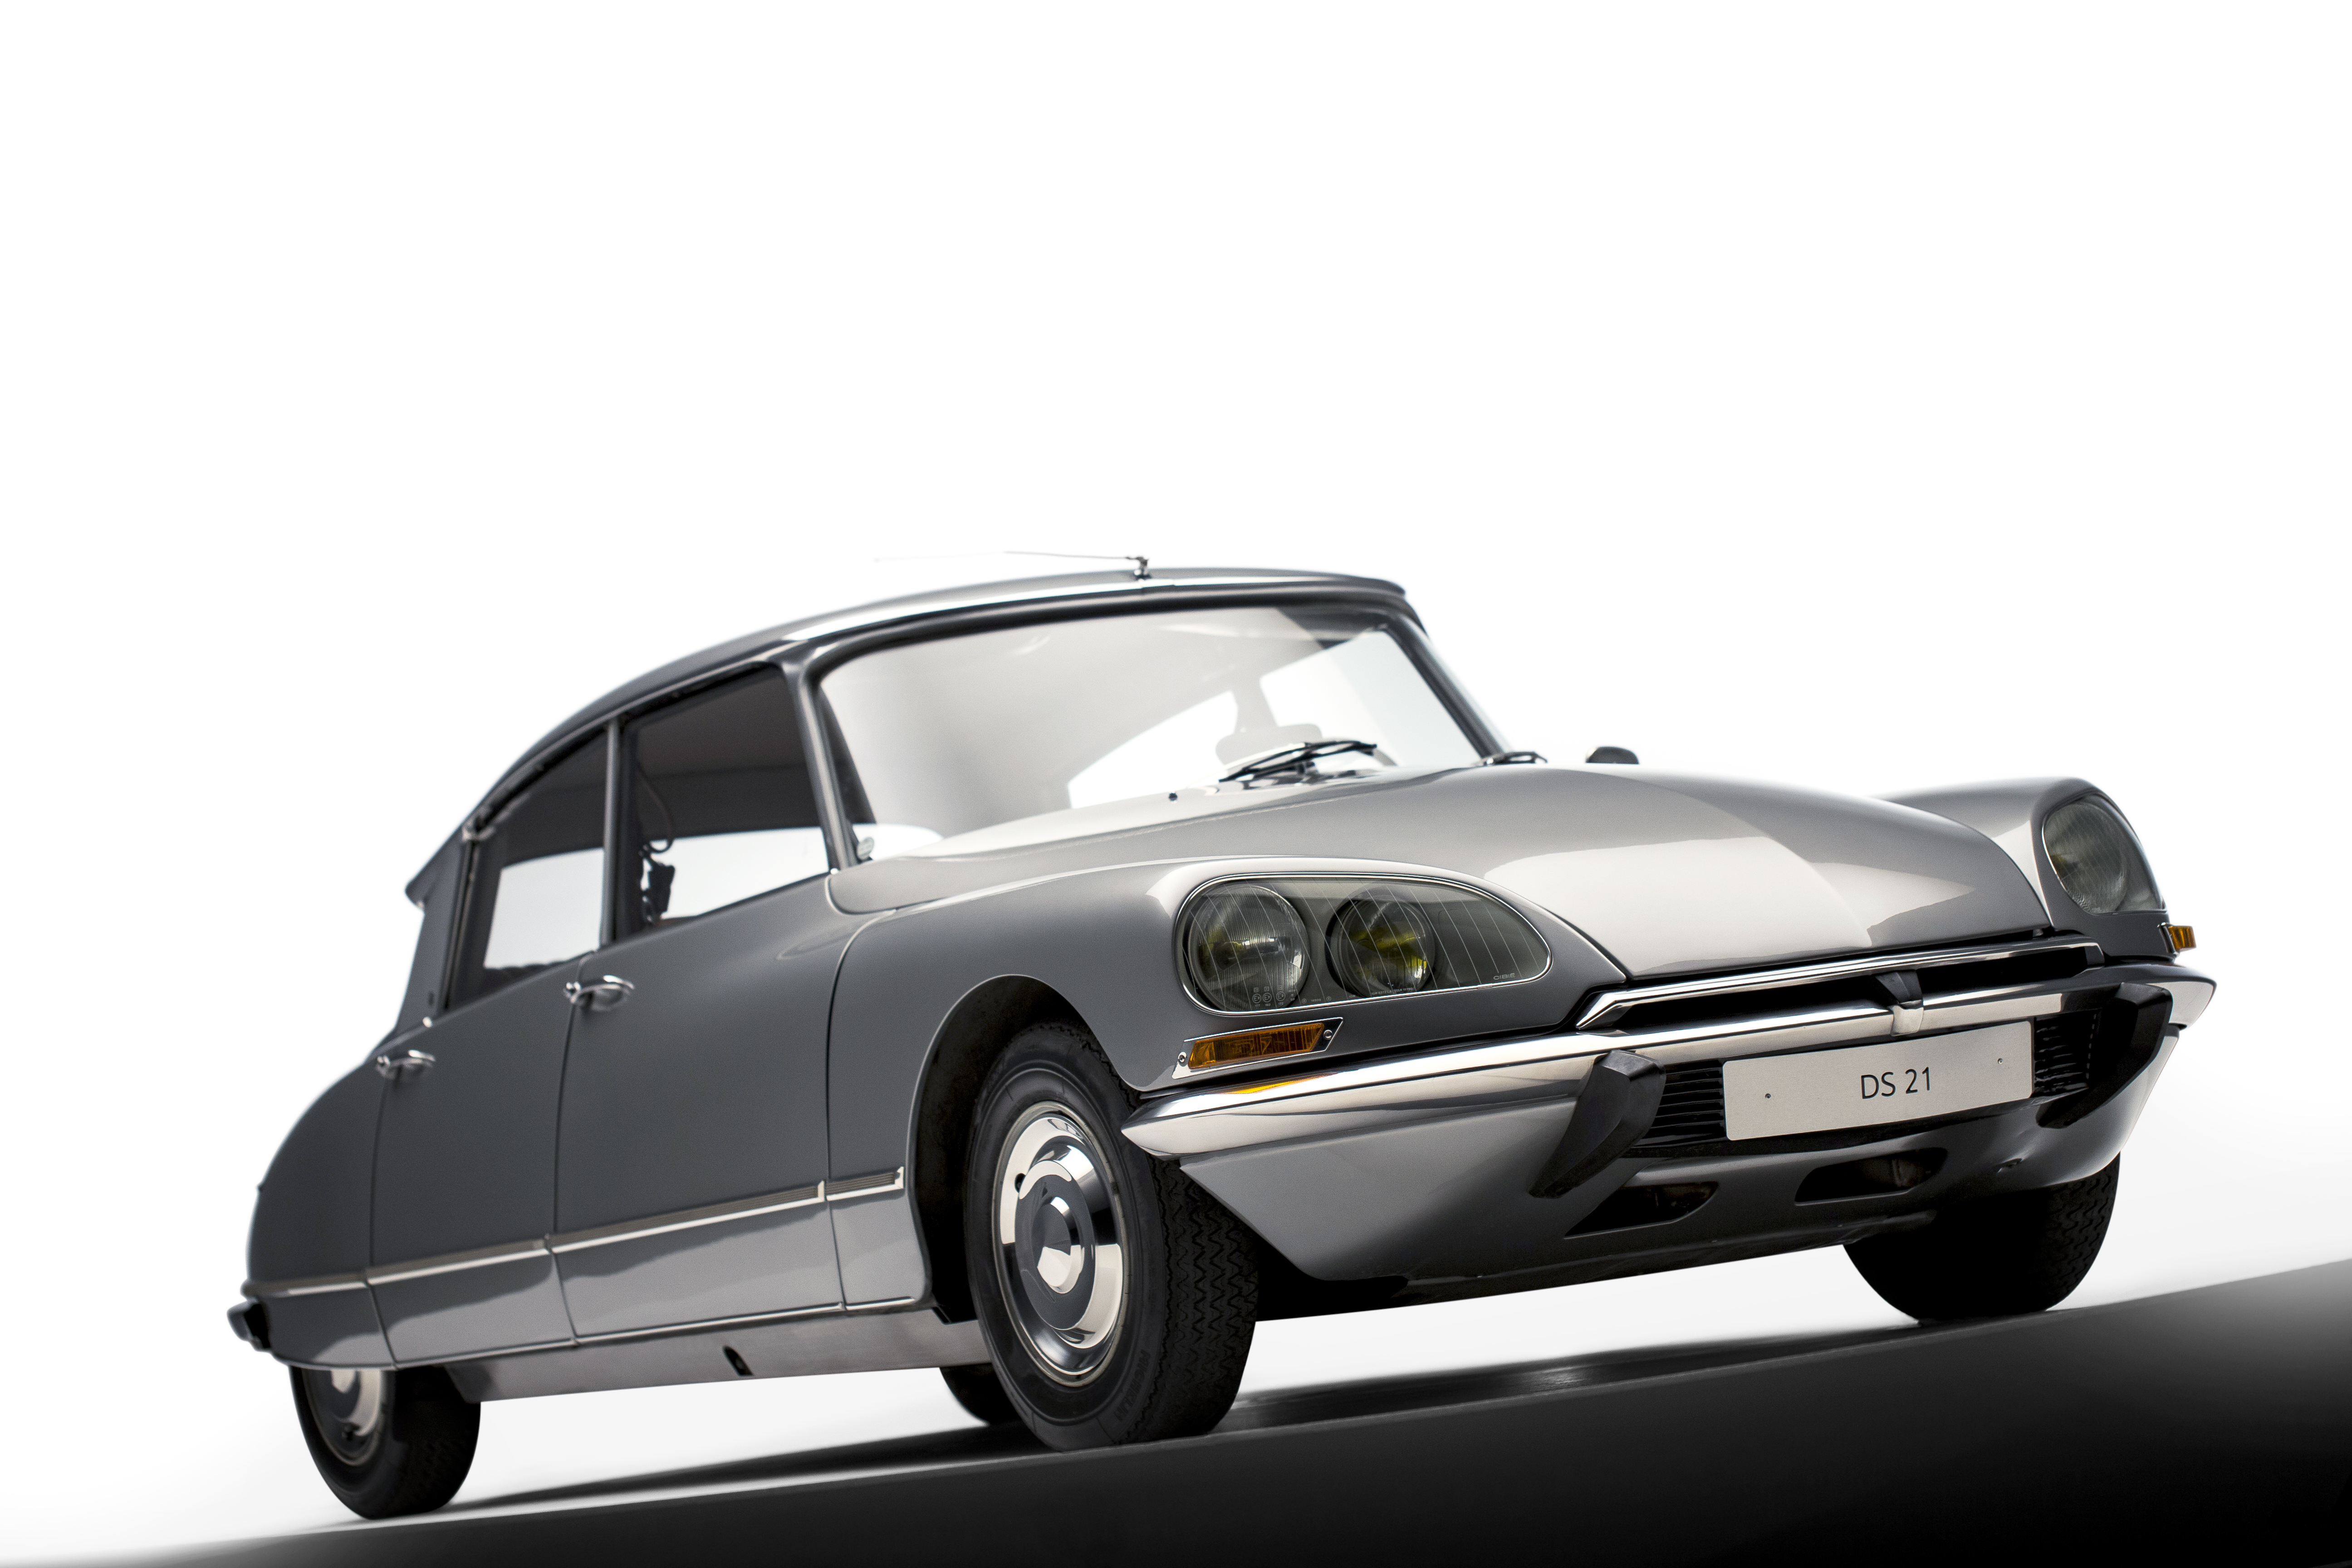 For Sale: Citroën DS 23 Pallas (1973) offered for GBP 22,950